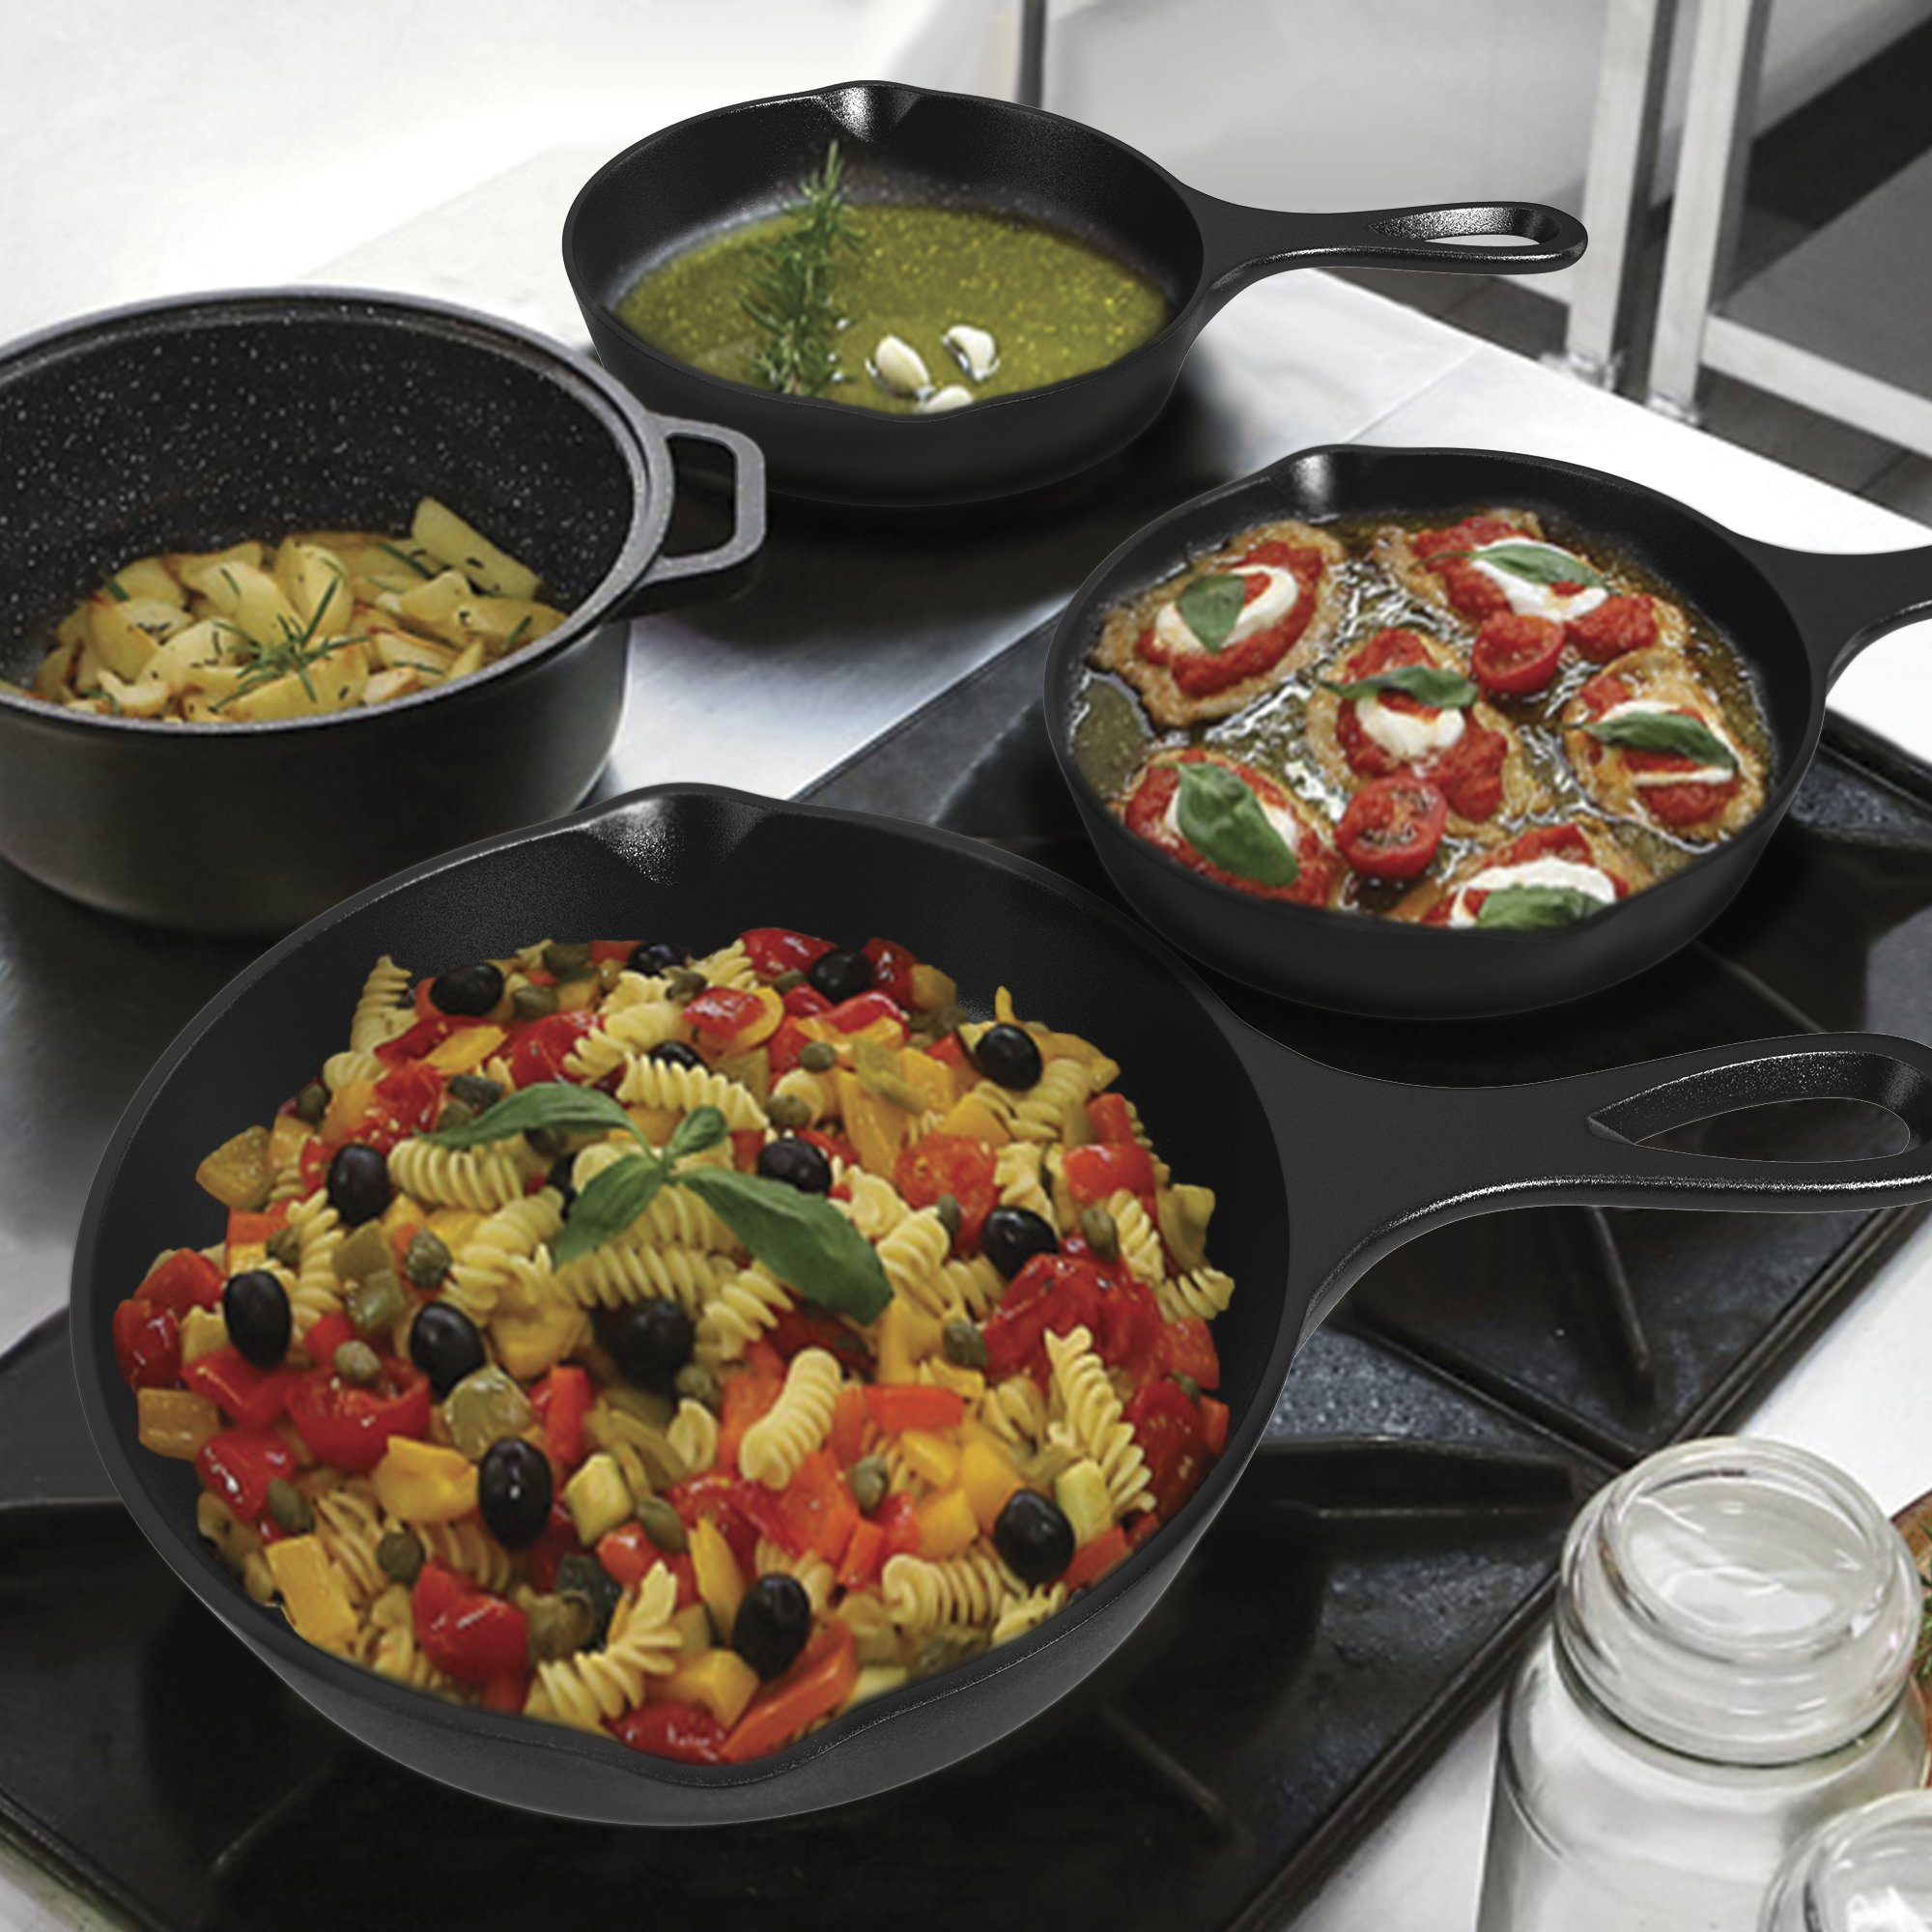 Pre-Seasoned Cast Iron Skillet 3 Piece Set (10, 8 inch & 6 inch Pans) Best Heavy Duty Professional Restaurant Chef Quality Pre Seasoned Pan Cookware For Frying, Saute, Cooking by Amsha Kitchen (Image #5)